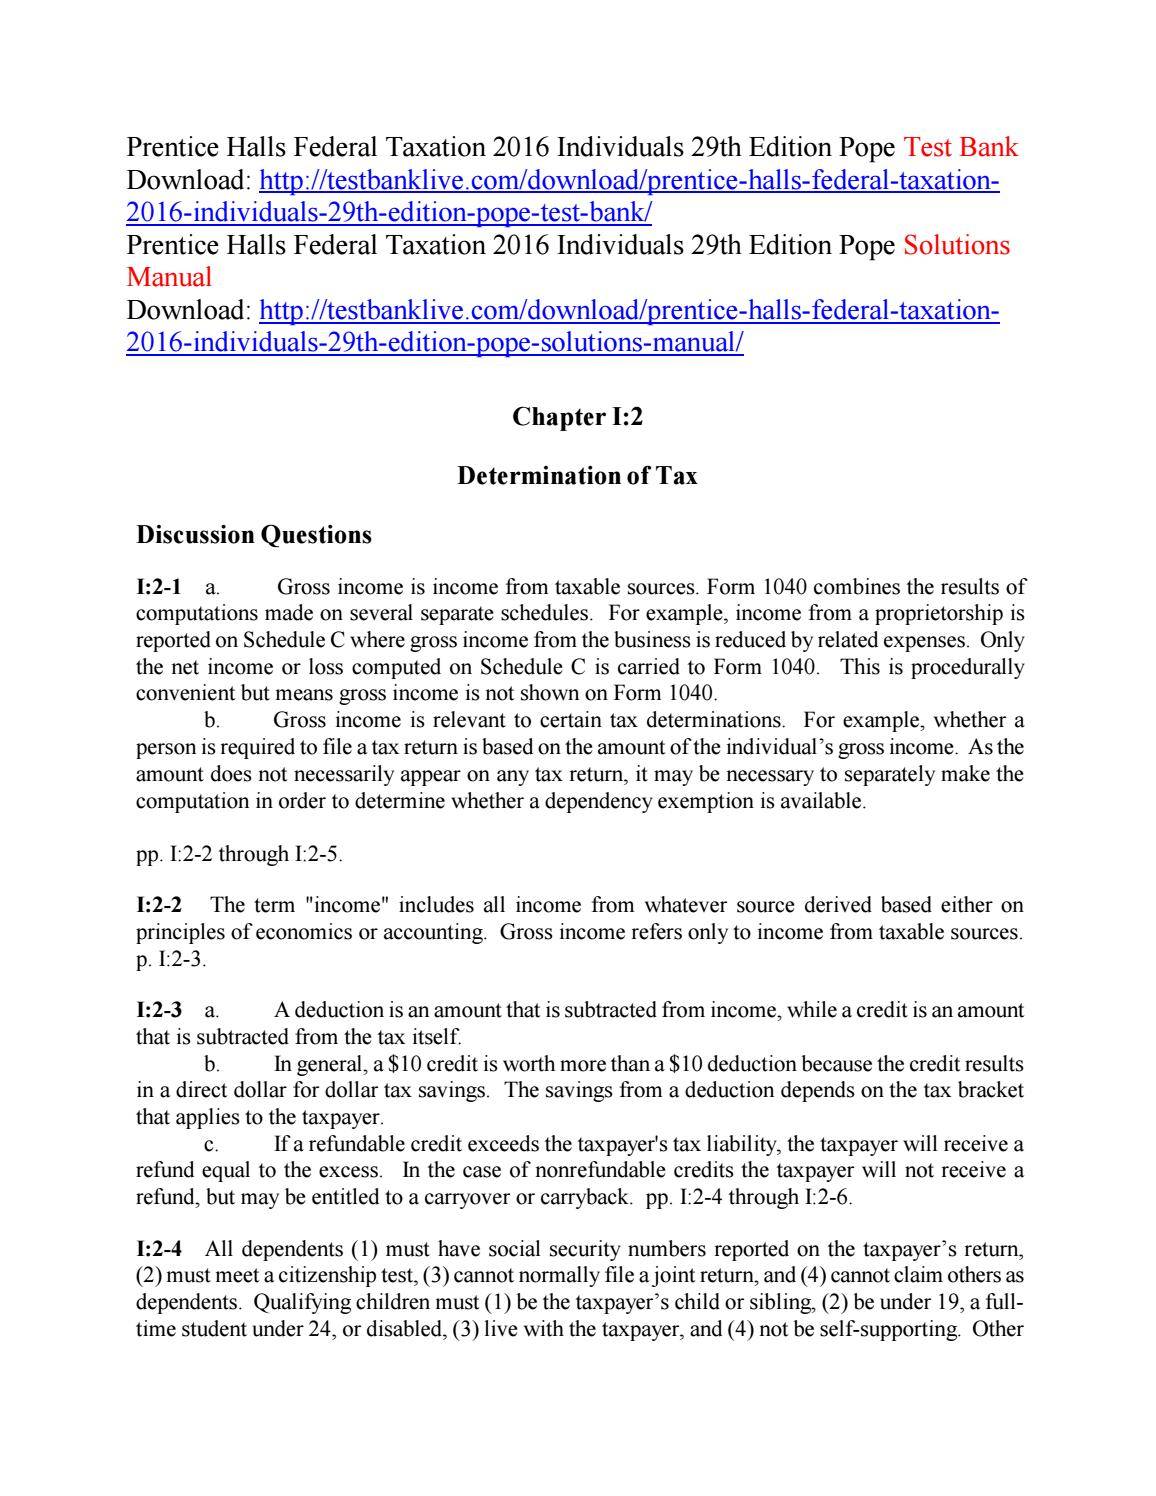 prentice hall federal taxation 2016 individuals solutions manual pdf download